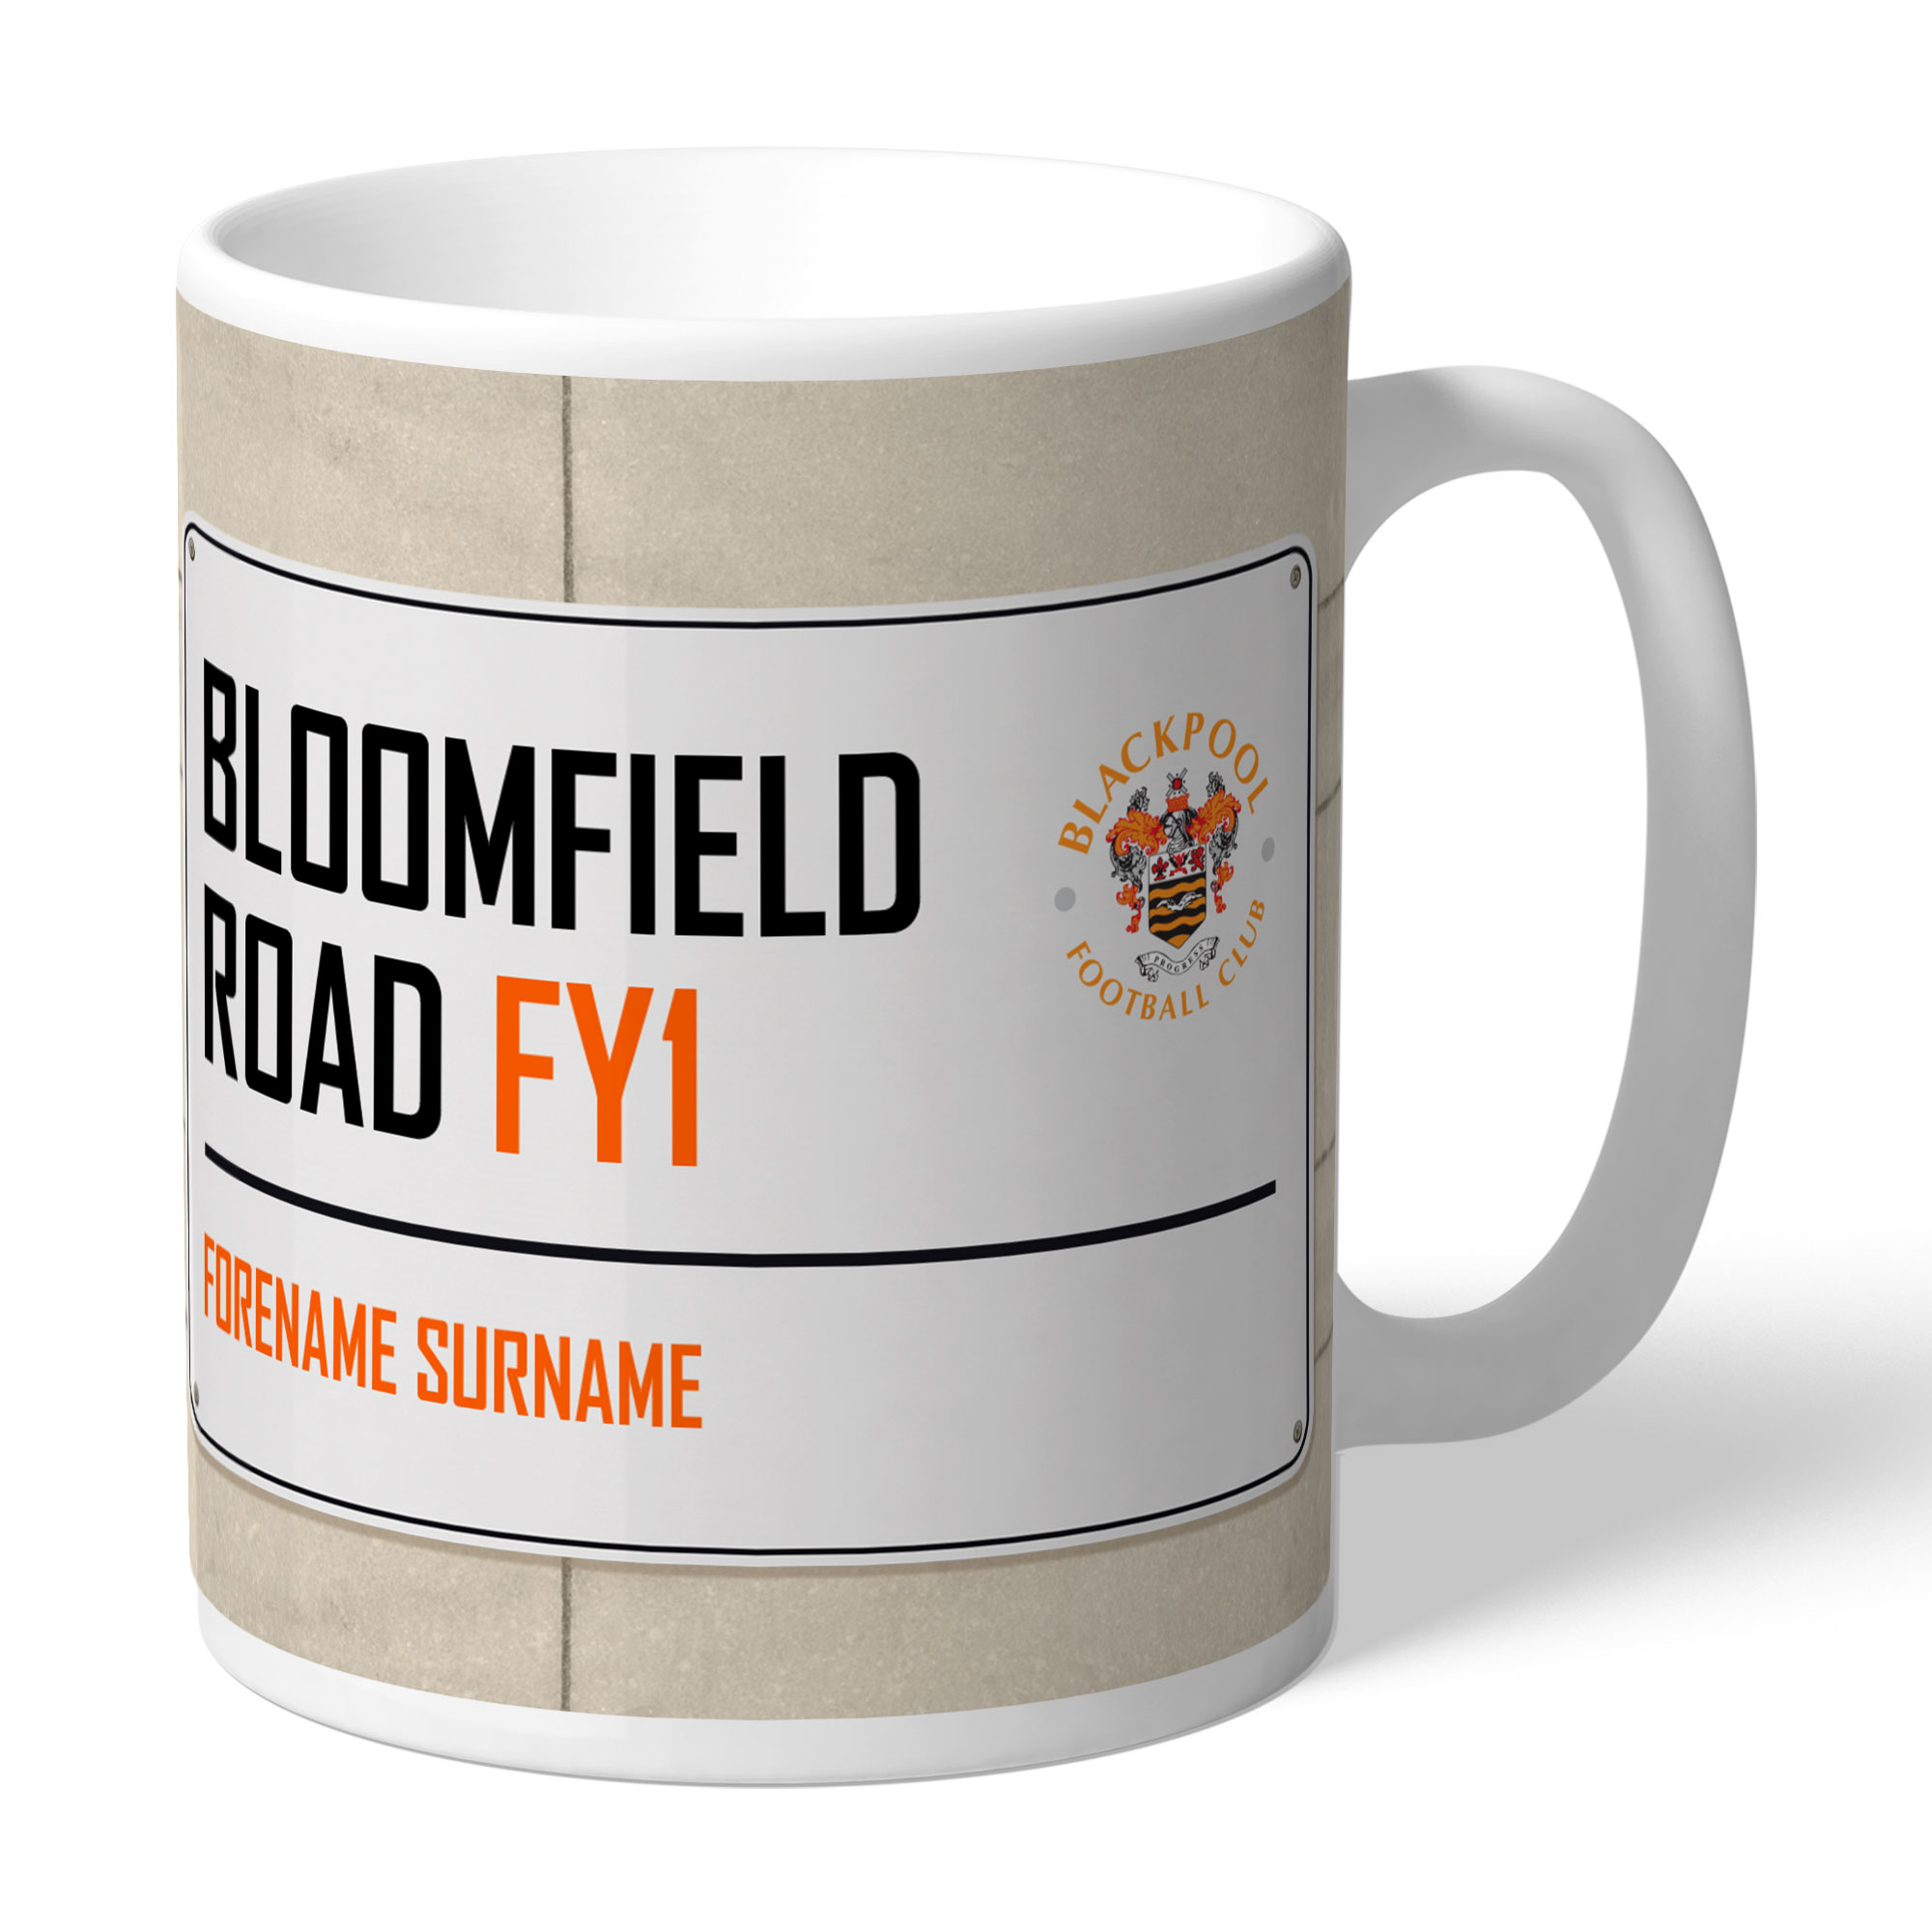 Blackpool FC Street Sign Mug